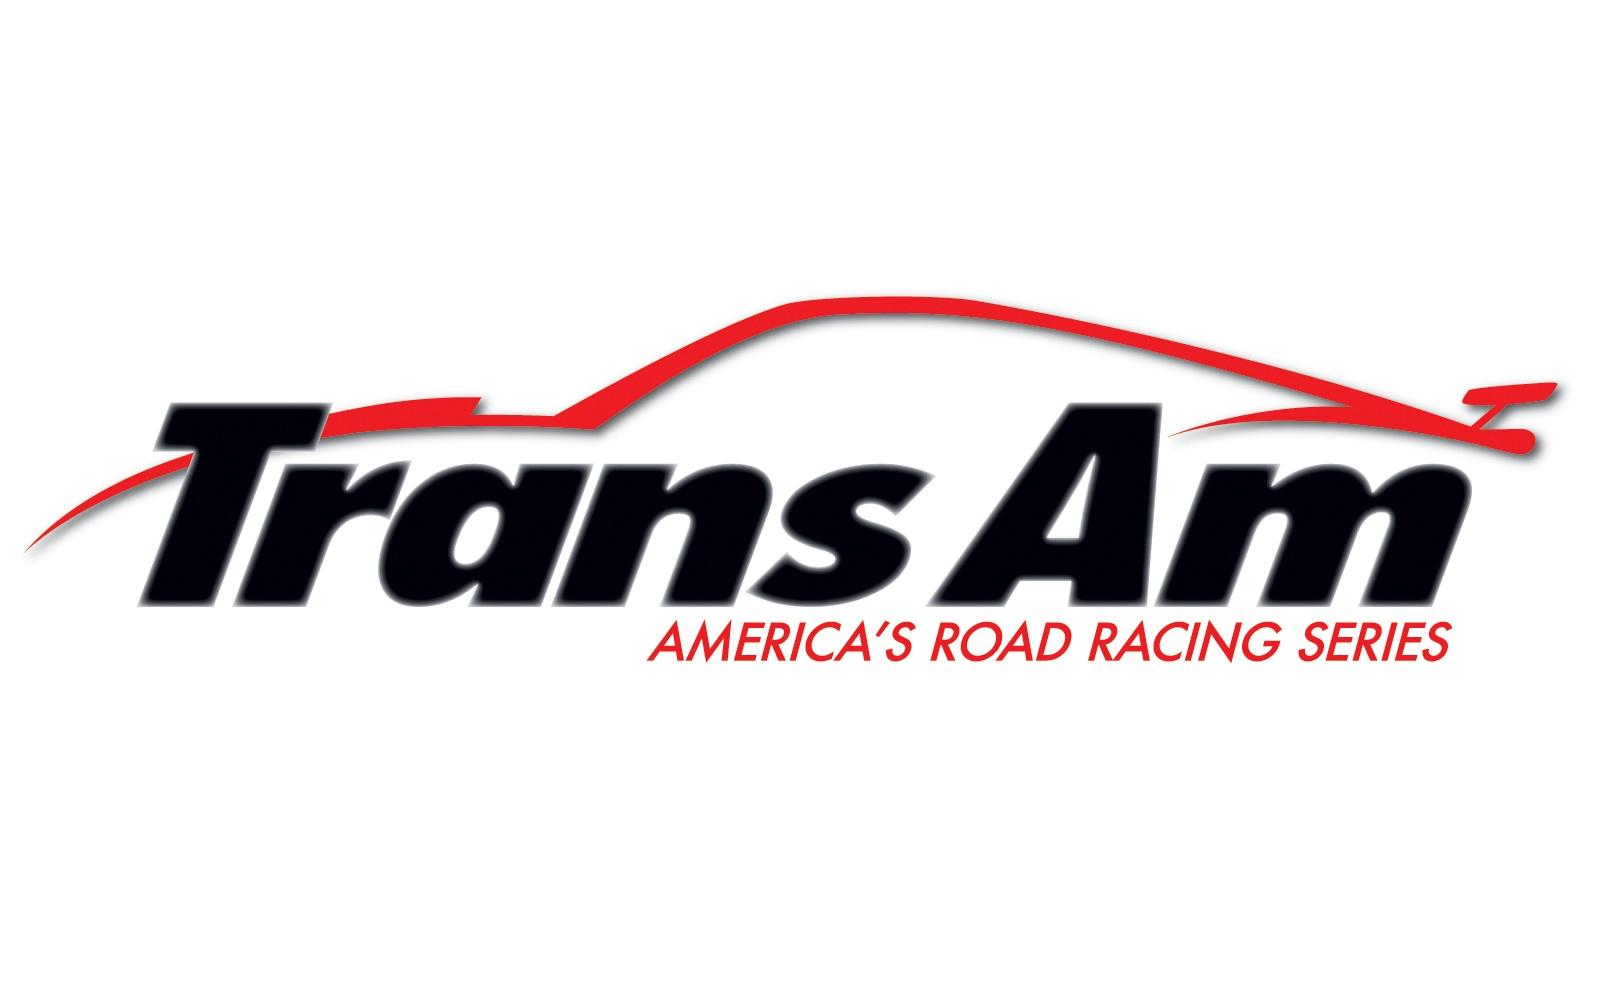 Competition Graphics Named Official Graphics Supplier of Trans Am